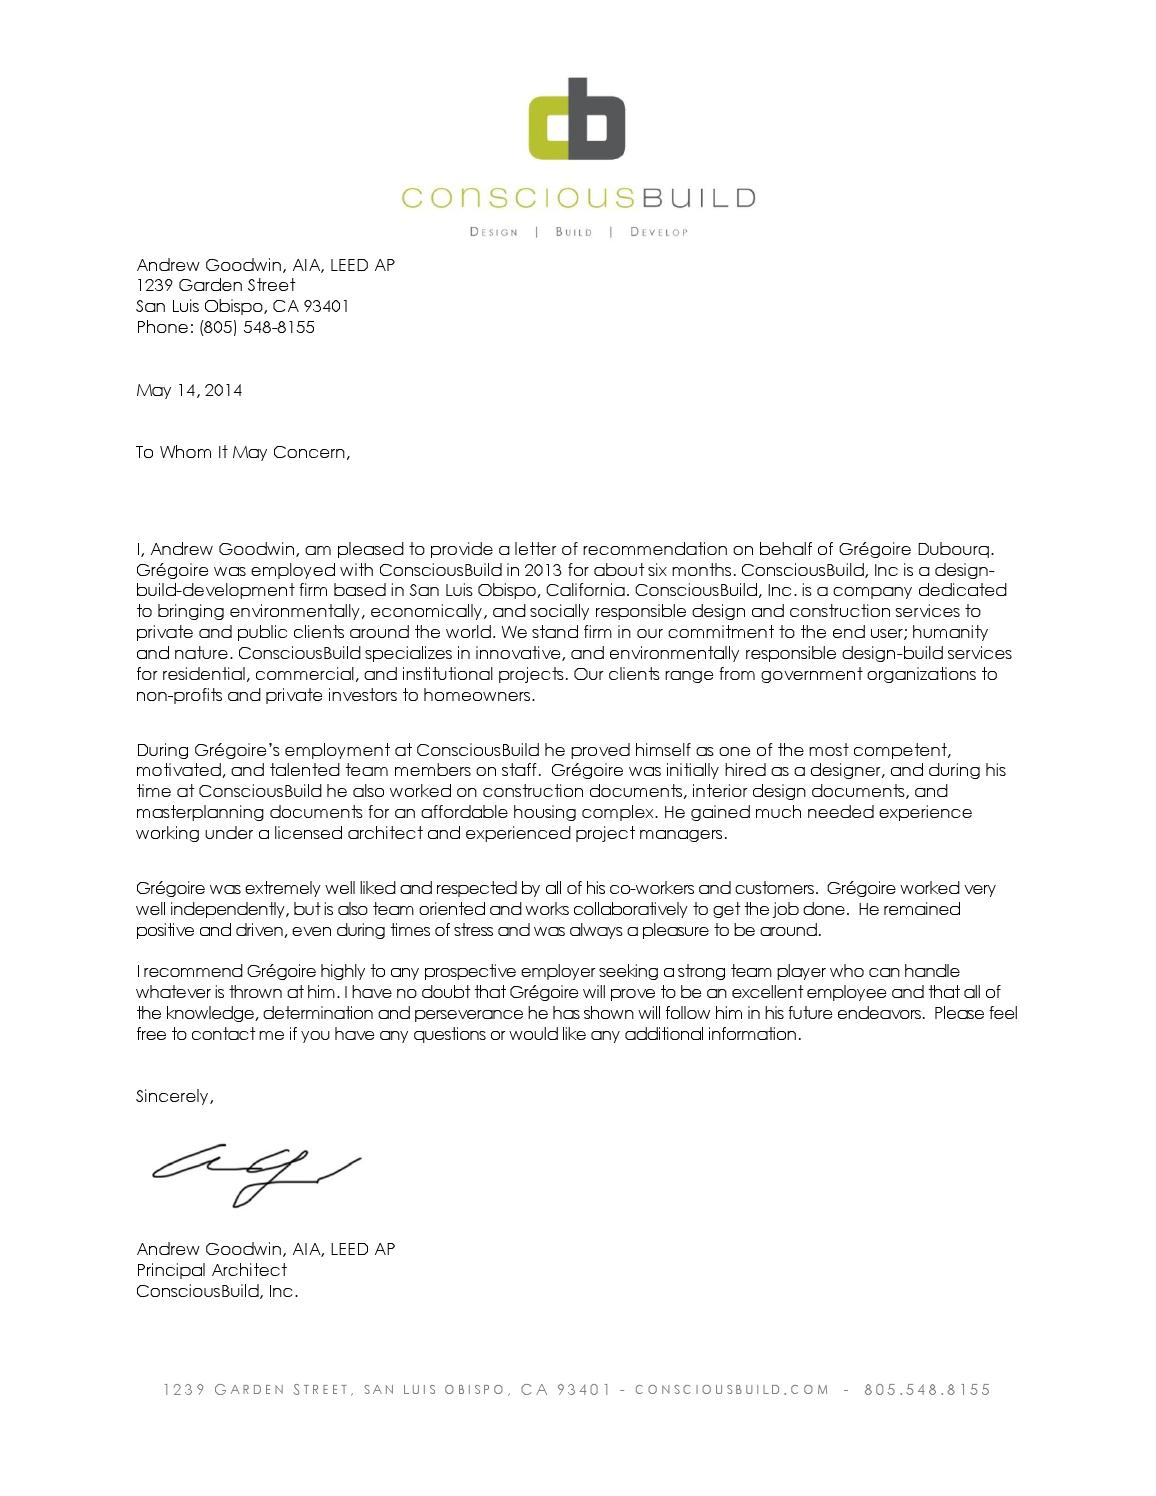 Letter Of Recommendation Intern Architect By Gregoire